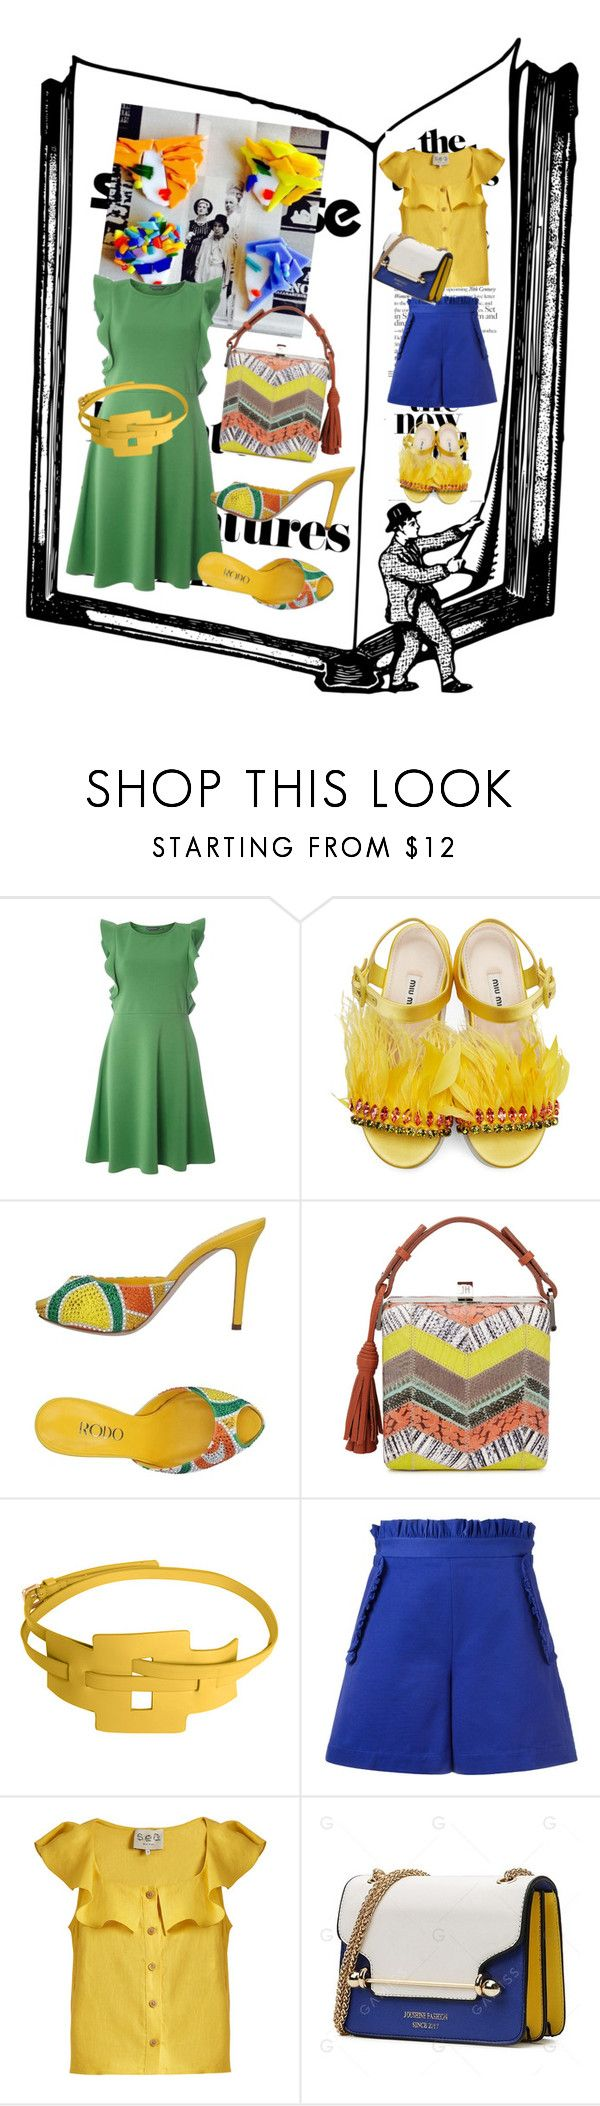 """Броши от @steklo-ibis"" by zakharova-83 ❤ liked on Polyvore featuring Dorothy Perkins, Miu Miu, Rodo, Jill Haber, MSGM and Sea, New York"